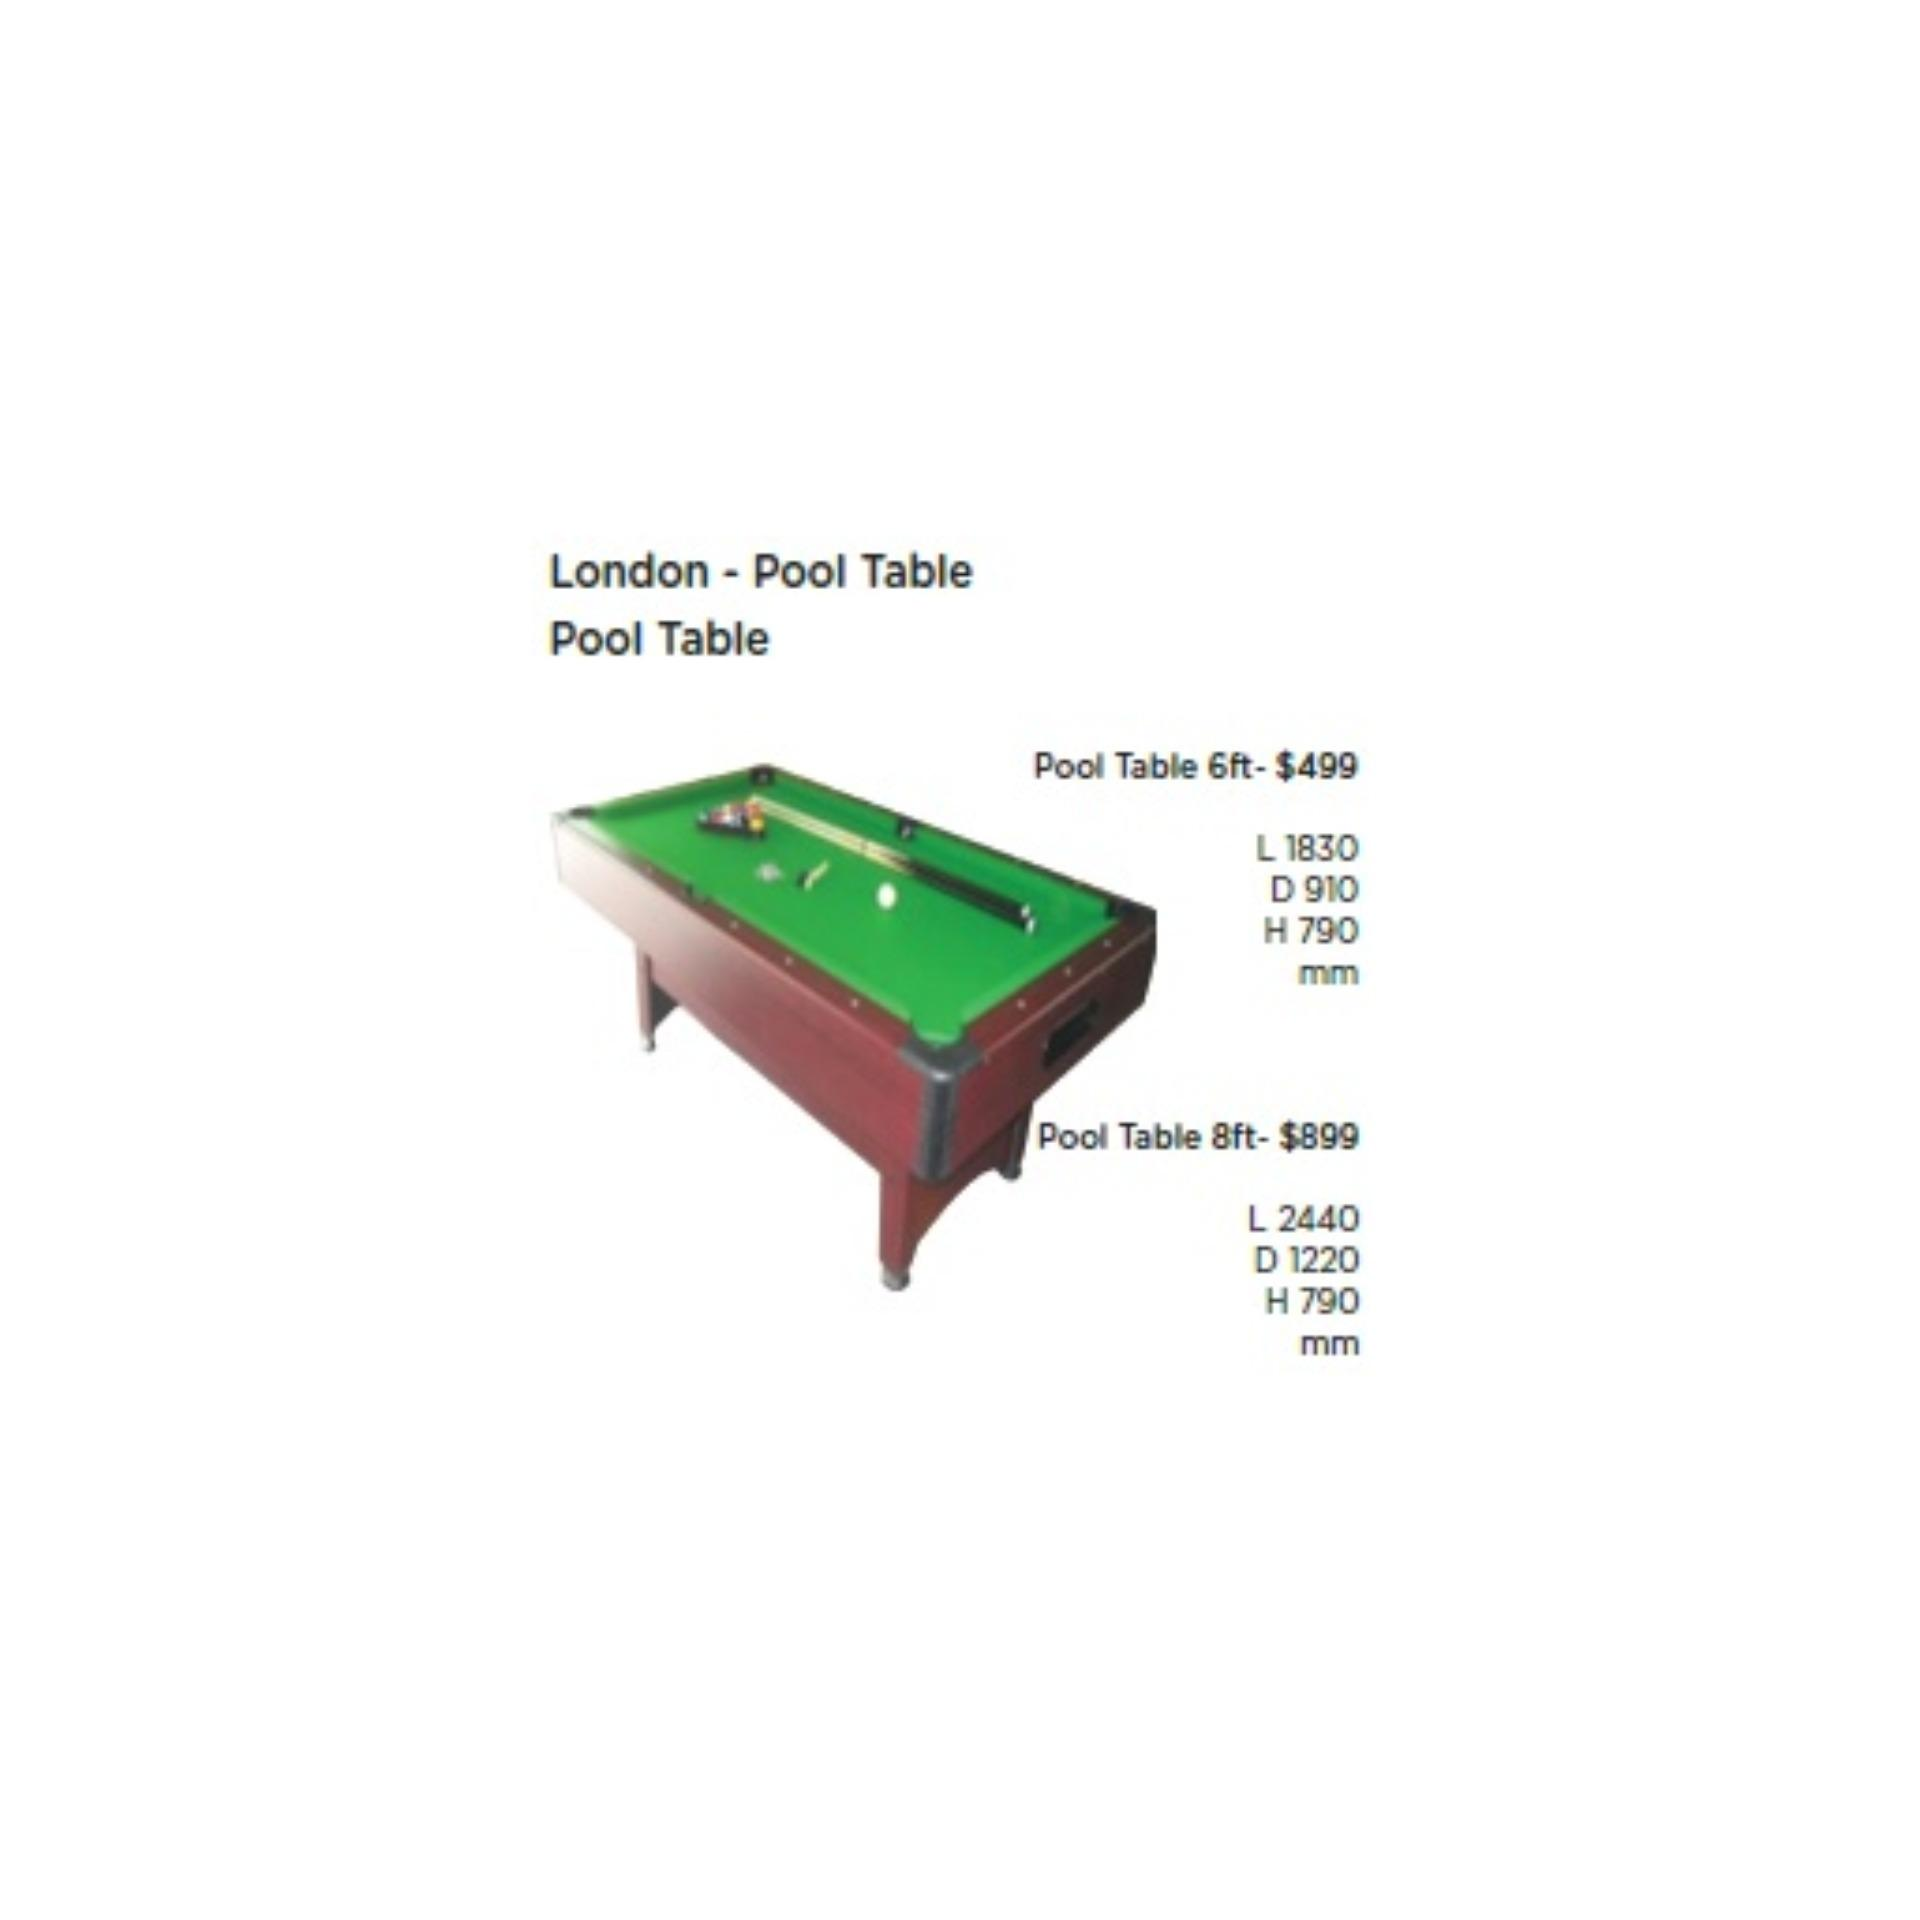 LONDON - POOL TABLE - 6FT